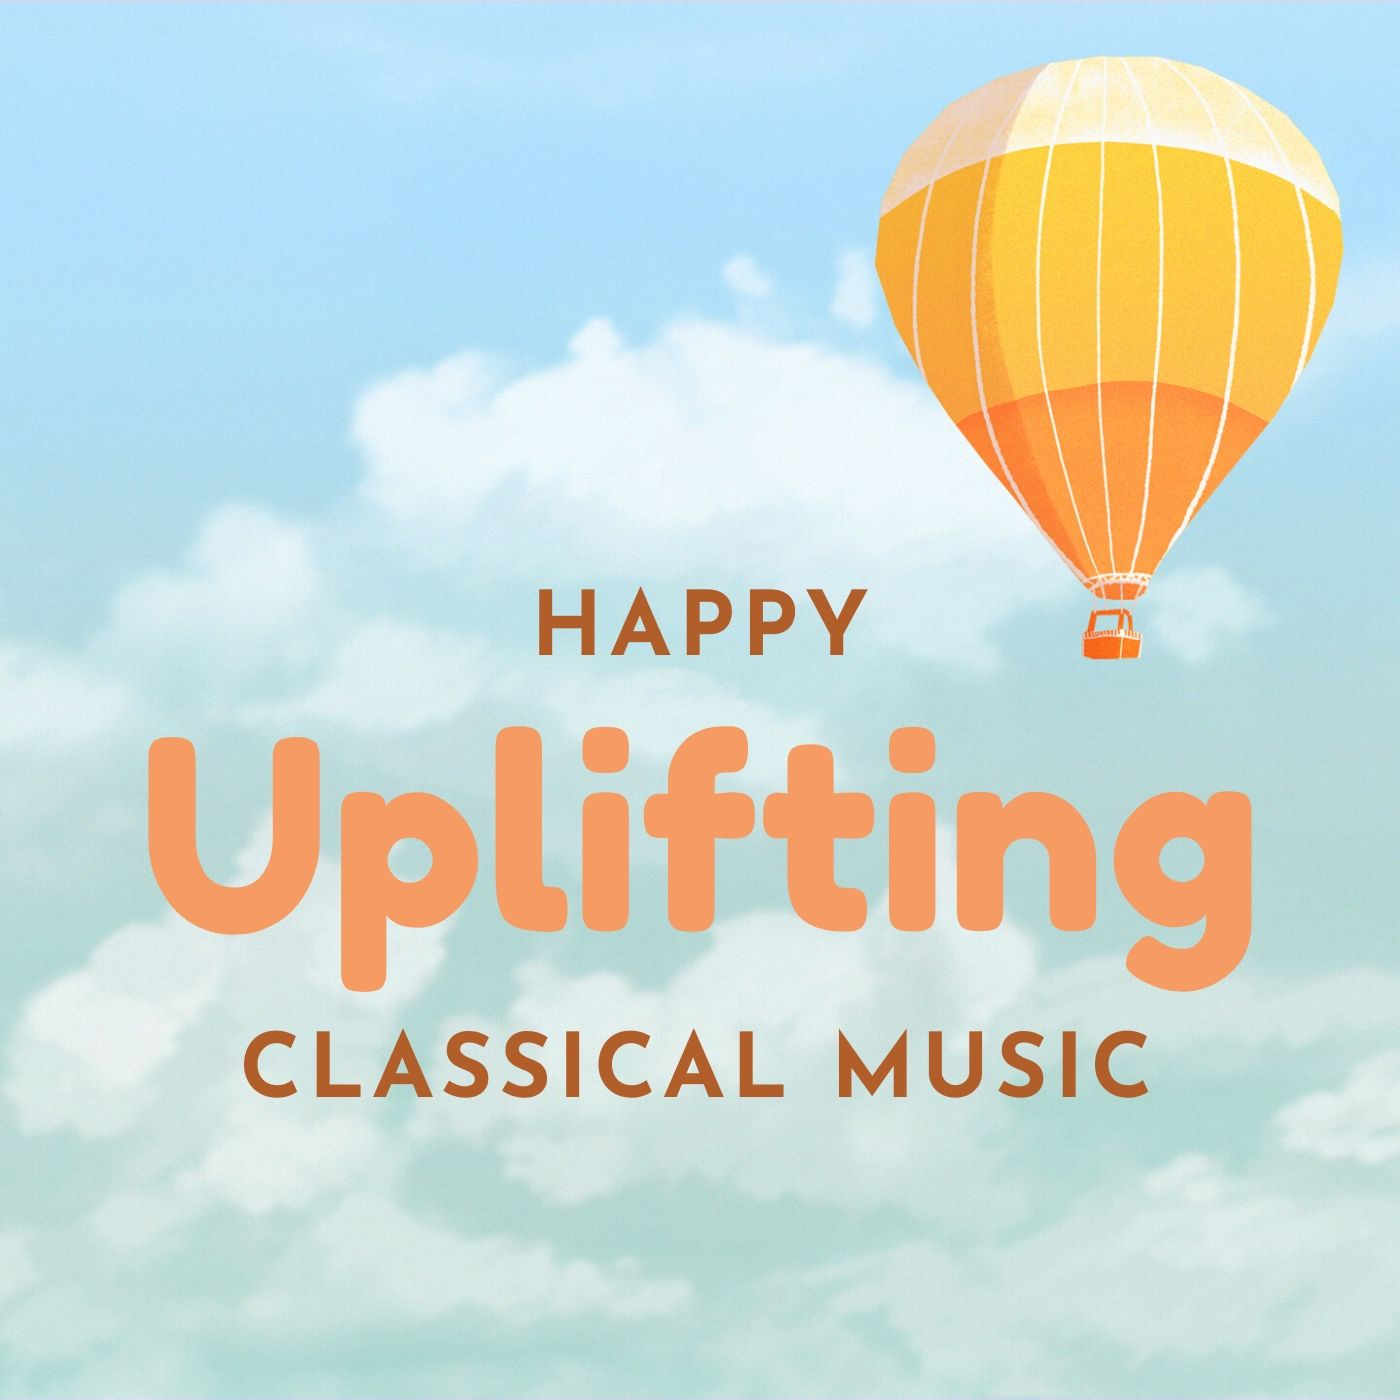 Happy, Uplifting Classical Music